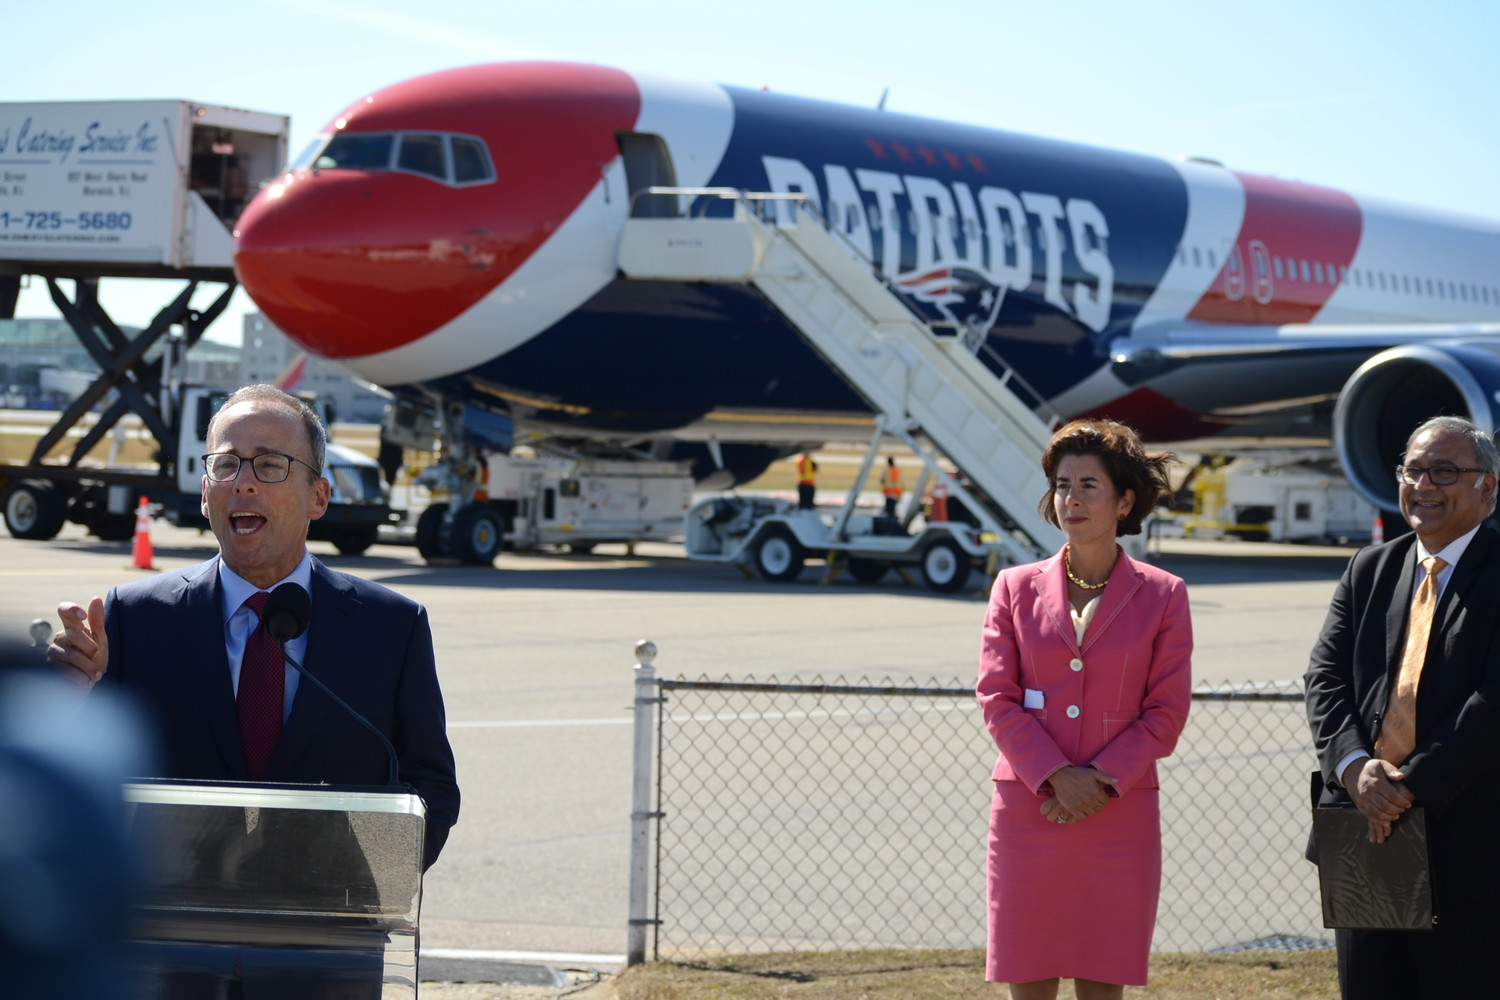 A PRO PARTNERSHIP: Patriots president Jonathan Kraft speaks at the inaugural sendoff for the new Patriots plane at TF Green Airport, with the plane, Governor Gina Raimondo and Rhode Island Airport Corporation CEO and president, Iftikhar Ahmad, in the background.